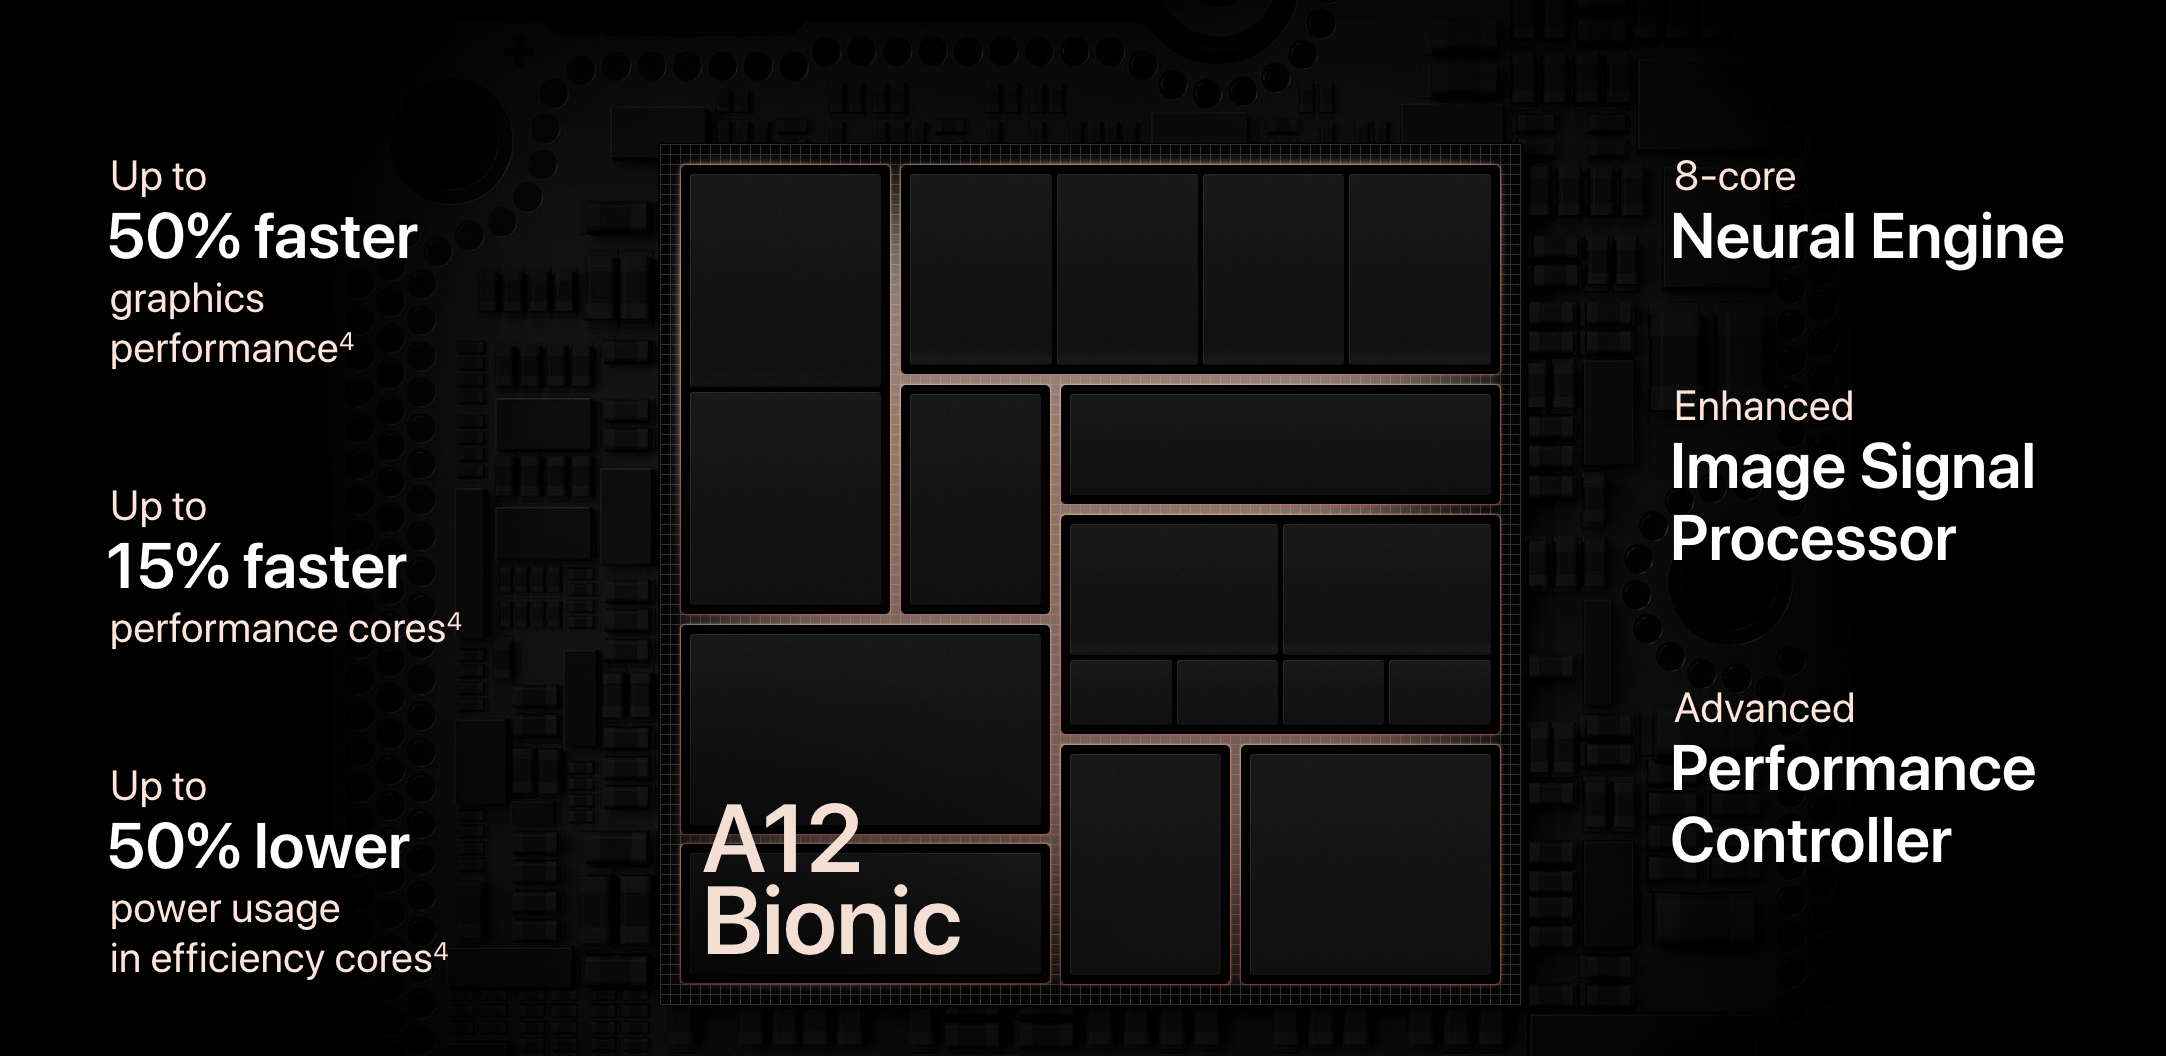 A12 Bionic Processor (image obtained from https://www.apple.com/iphone-xs/)